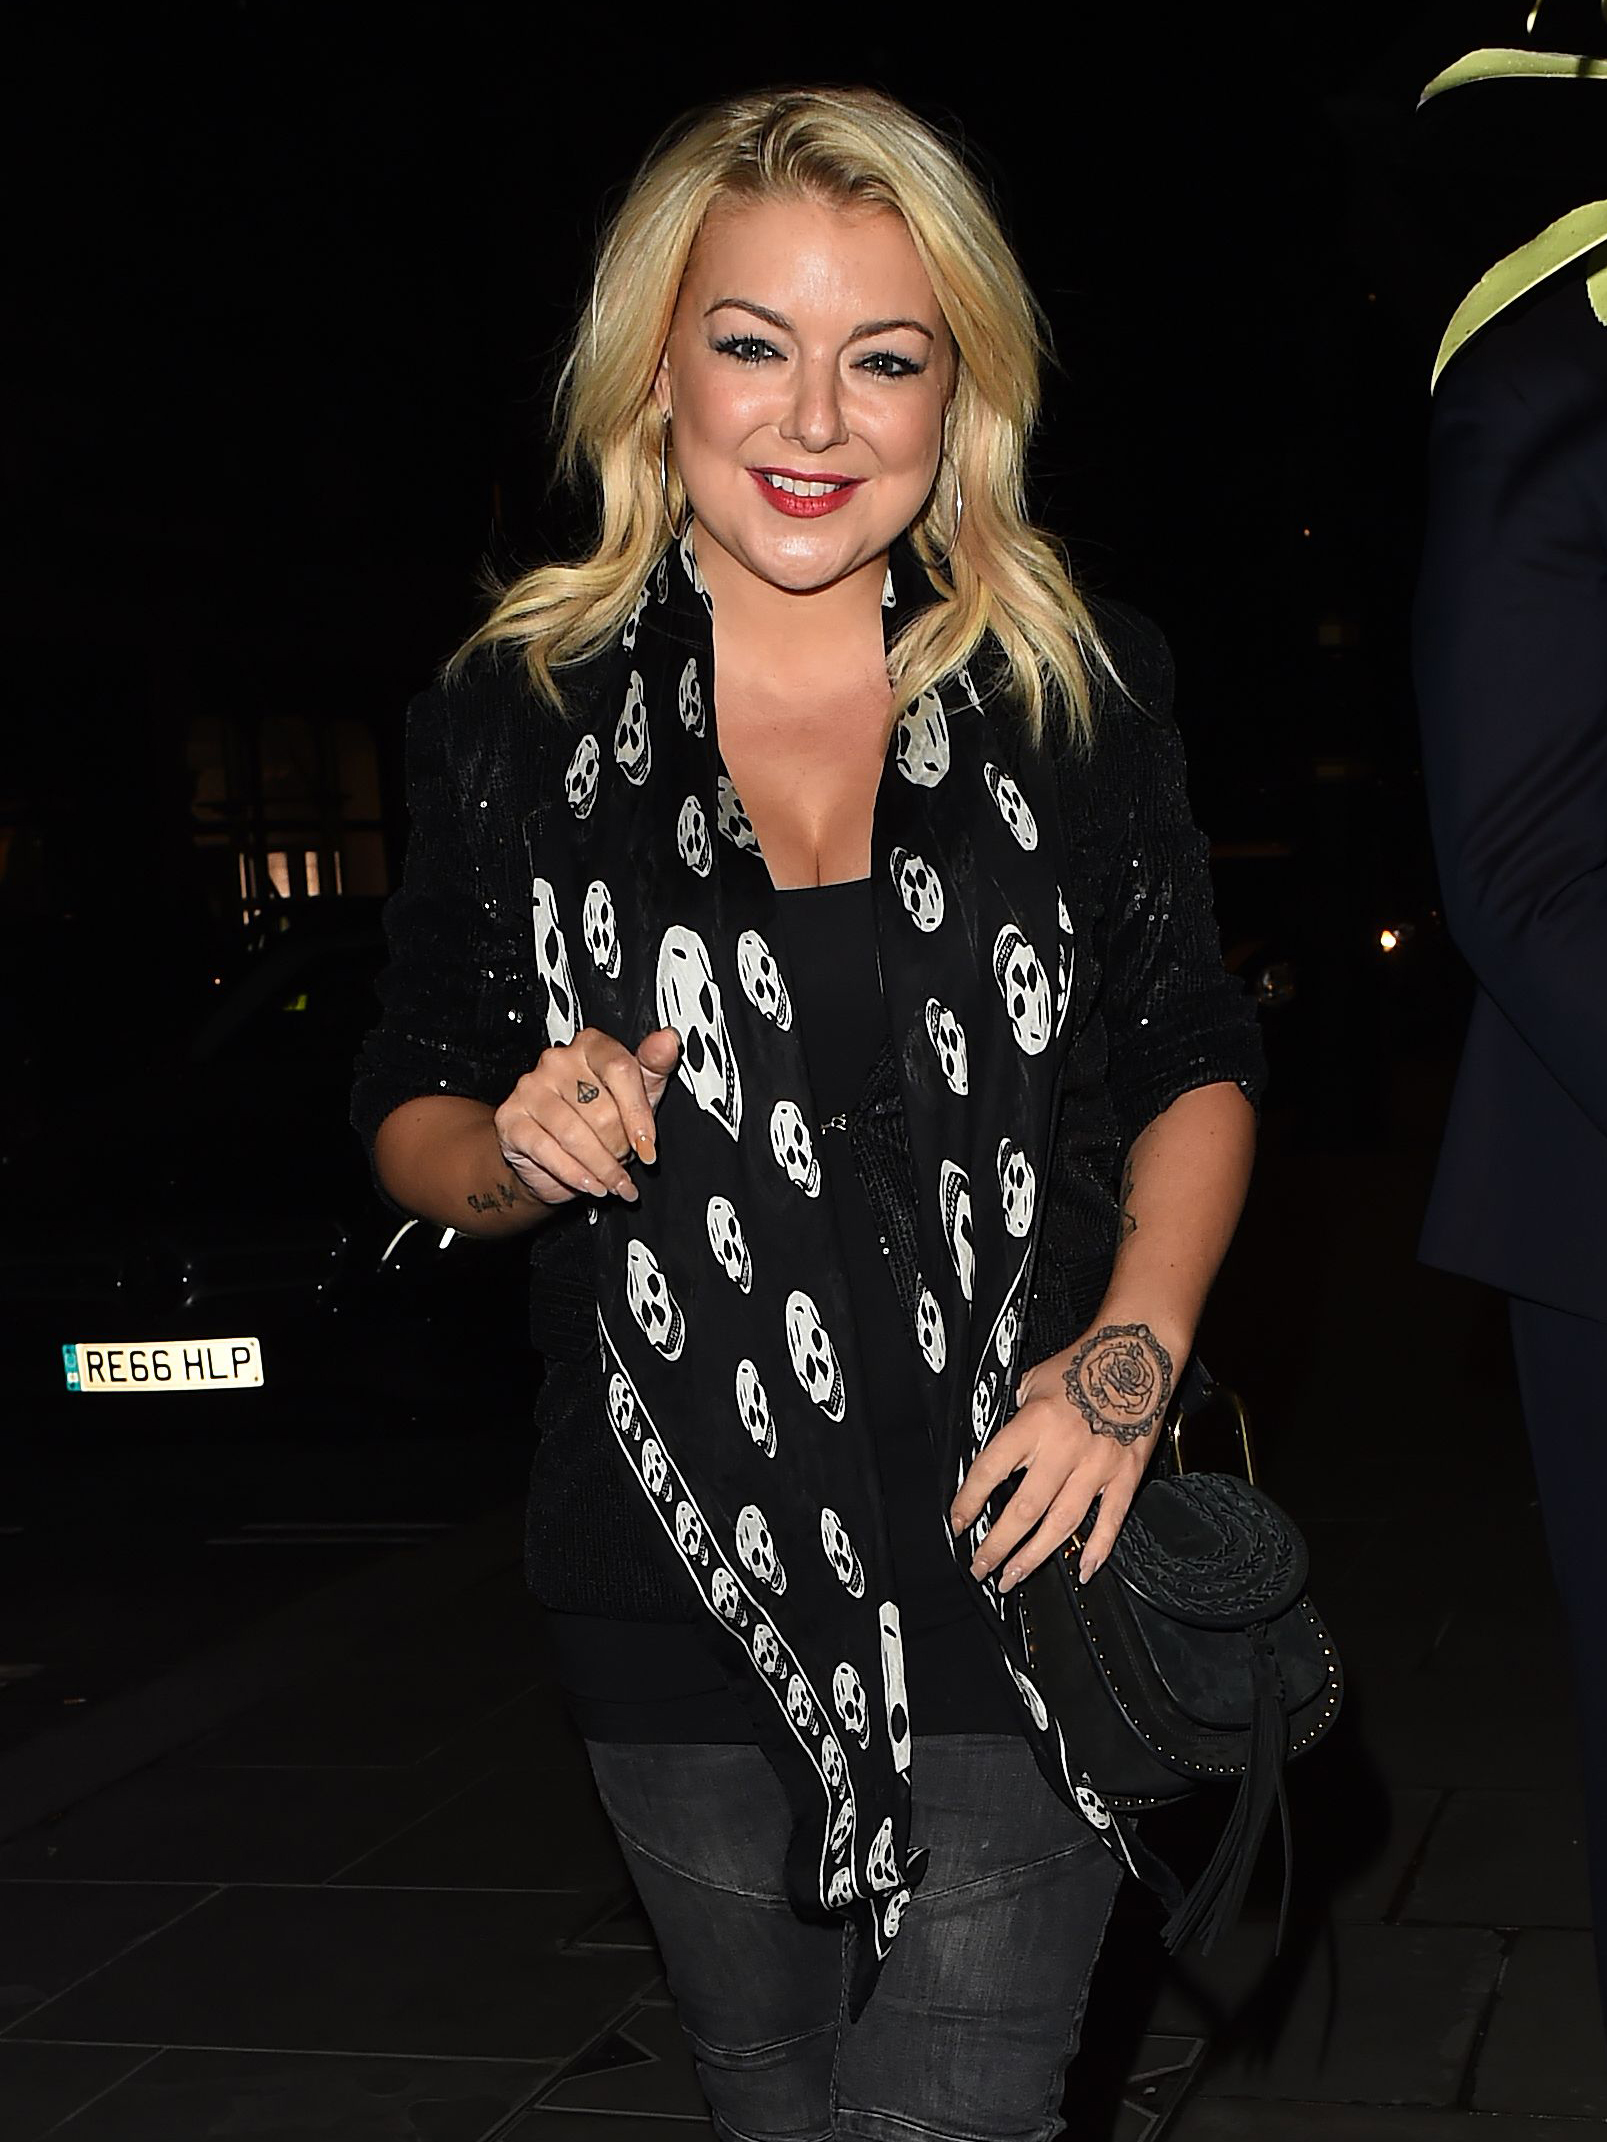 Sheridan Smith reveals dramatic transformation as she announces exciting news